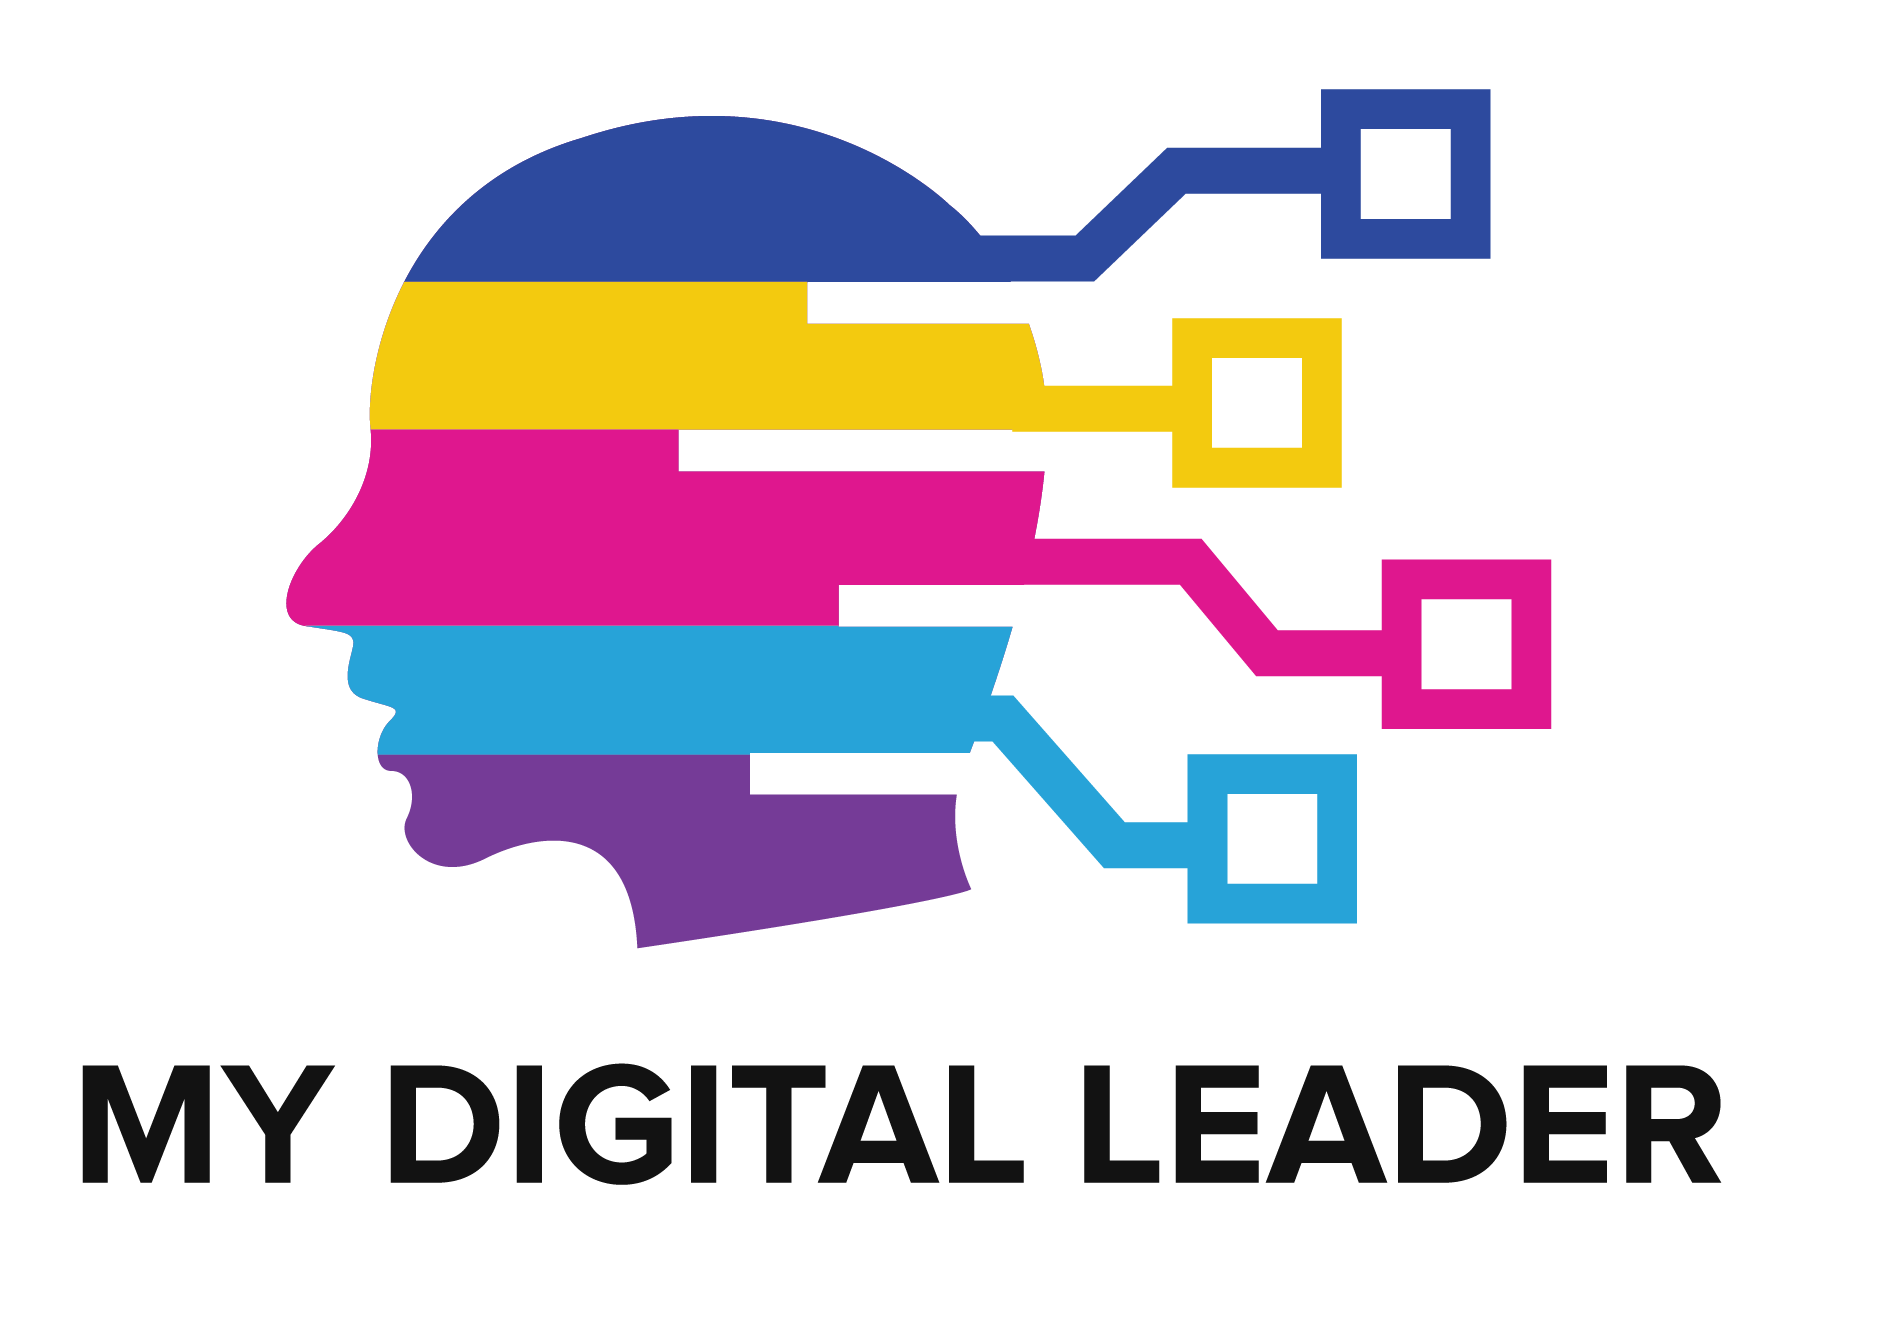 My Digital Leader Logo